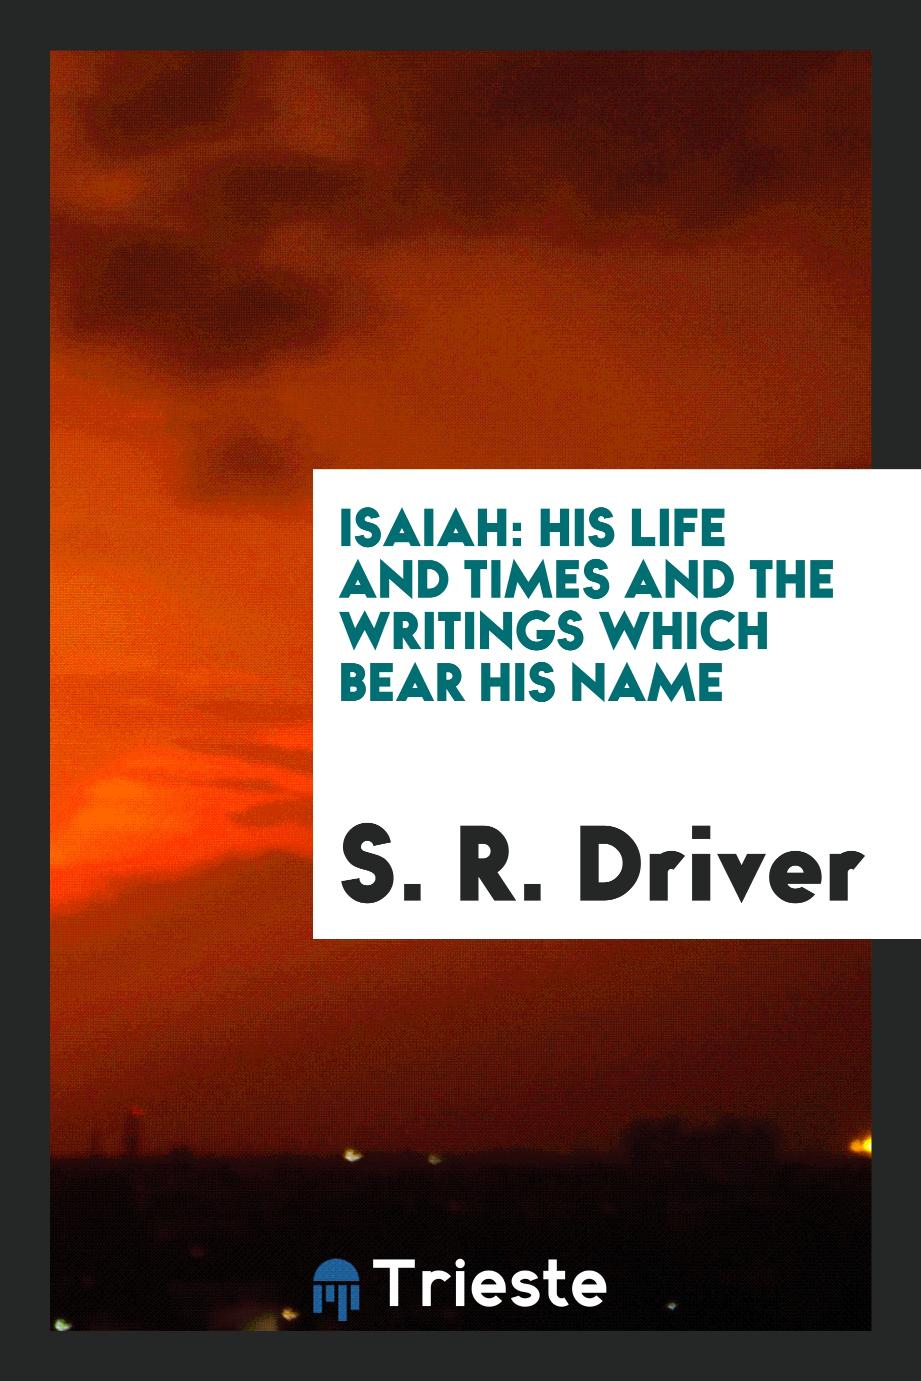 Isaiah: his life and times and the writings which bear his name